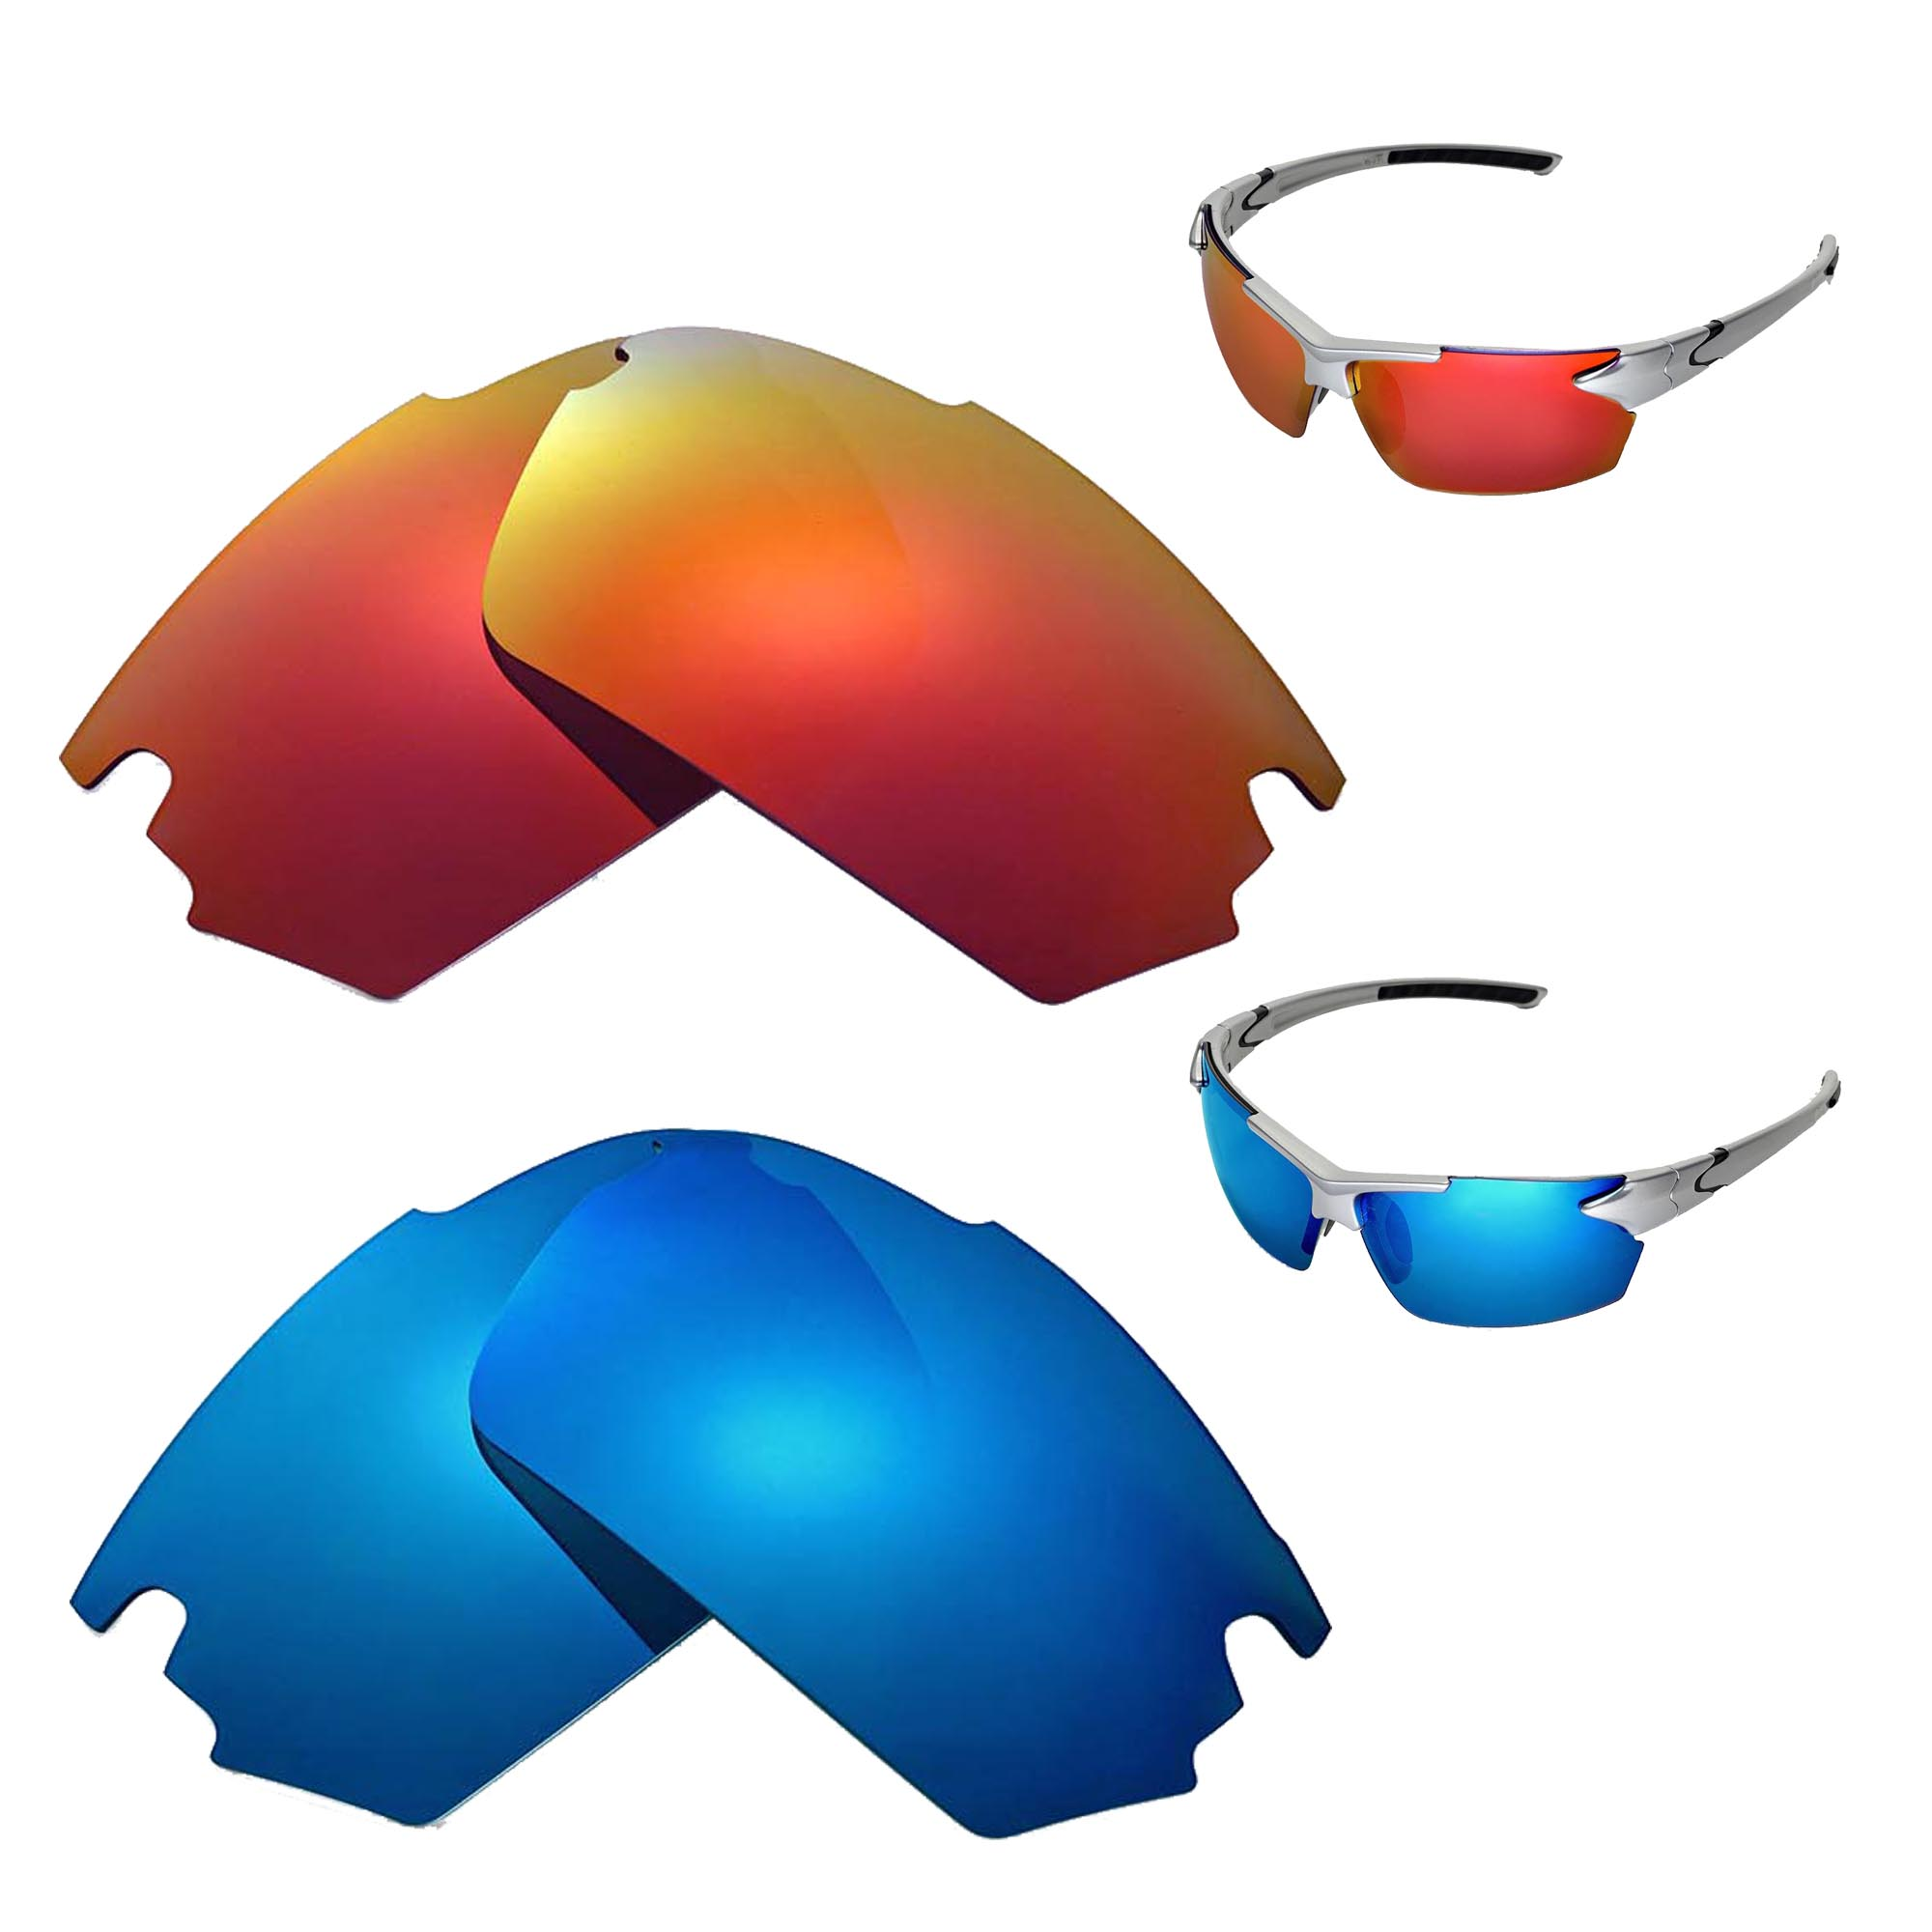 dcdb633618 Details about New Walleva Fire Red+Ice Blue Polarized Replacement Lenses  For TIFOSI Jet